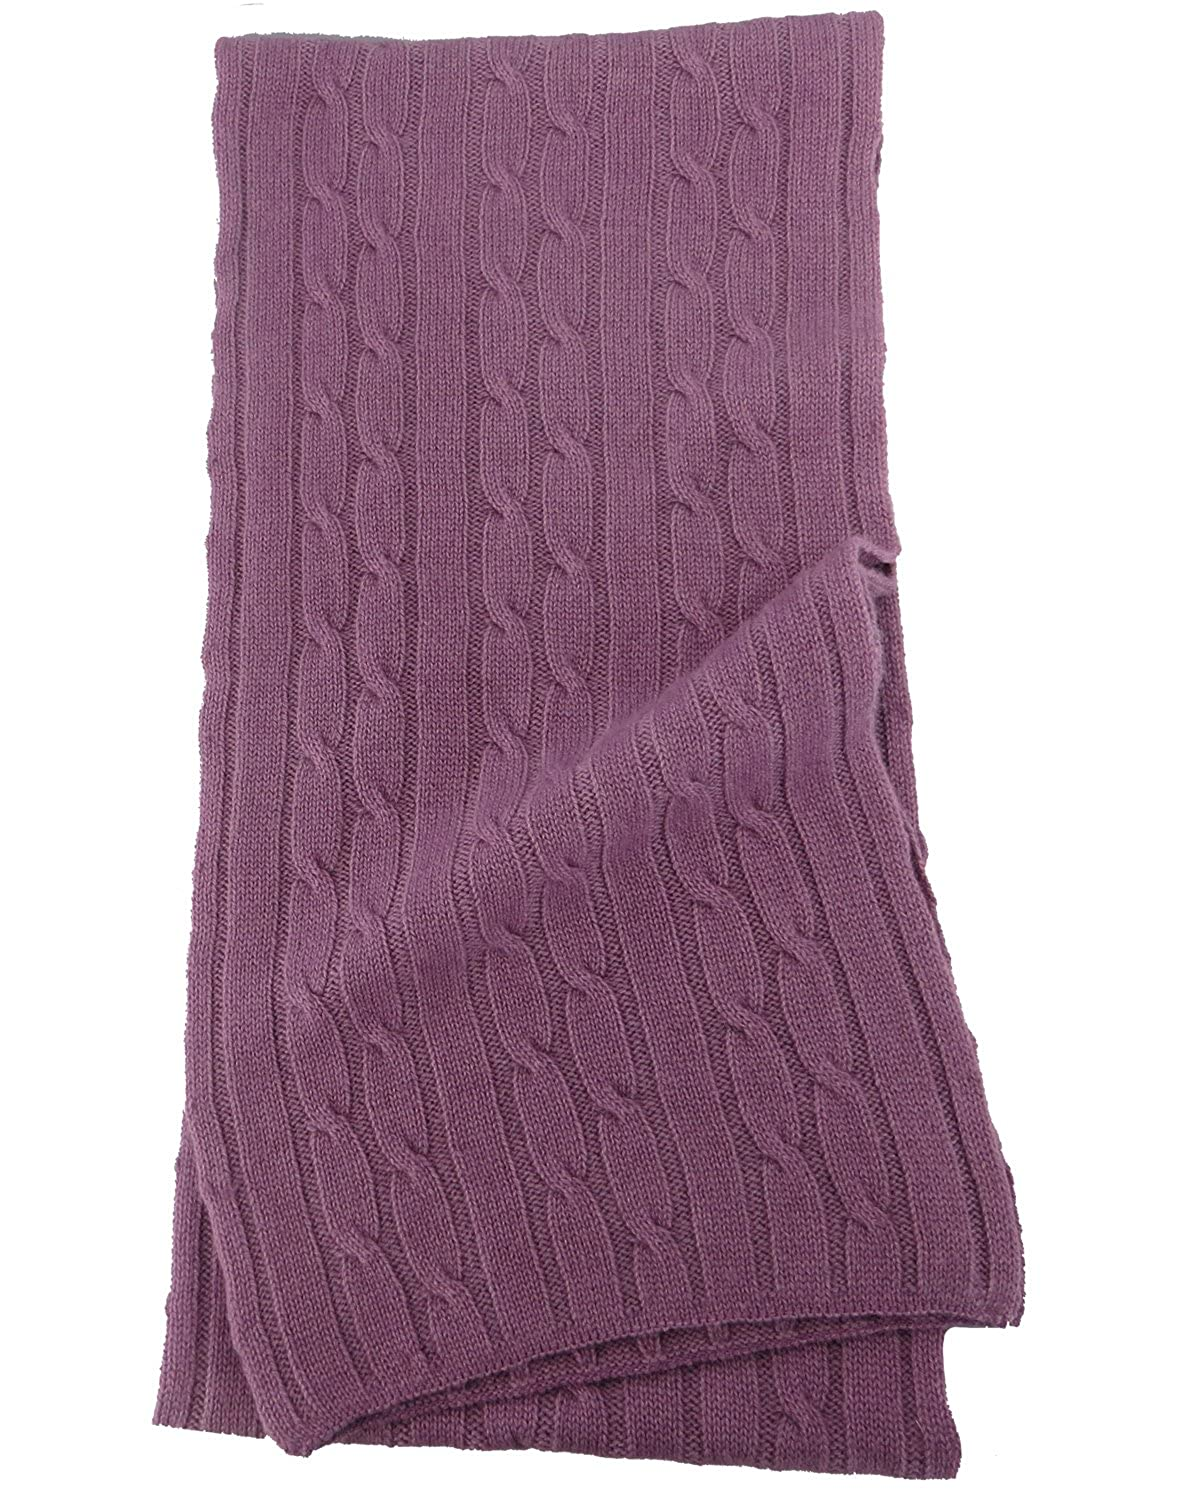 Pure Cashmere Cable Knit Scarf Solid Colors CB-SC-PS02-18LL